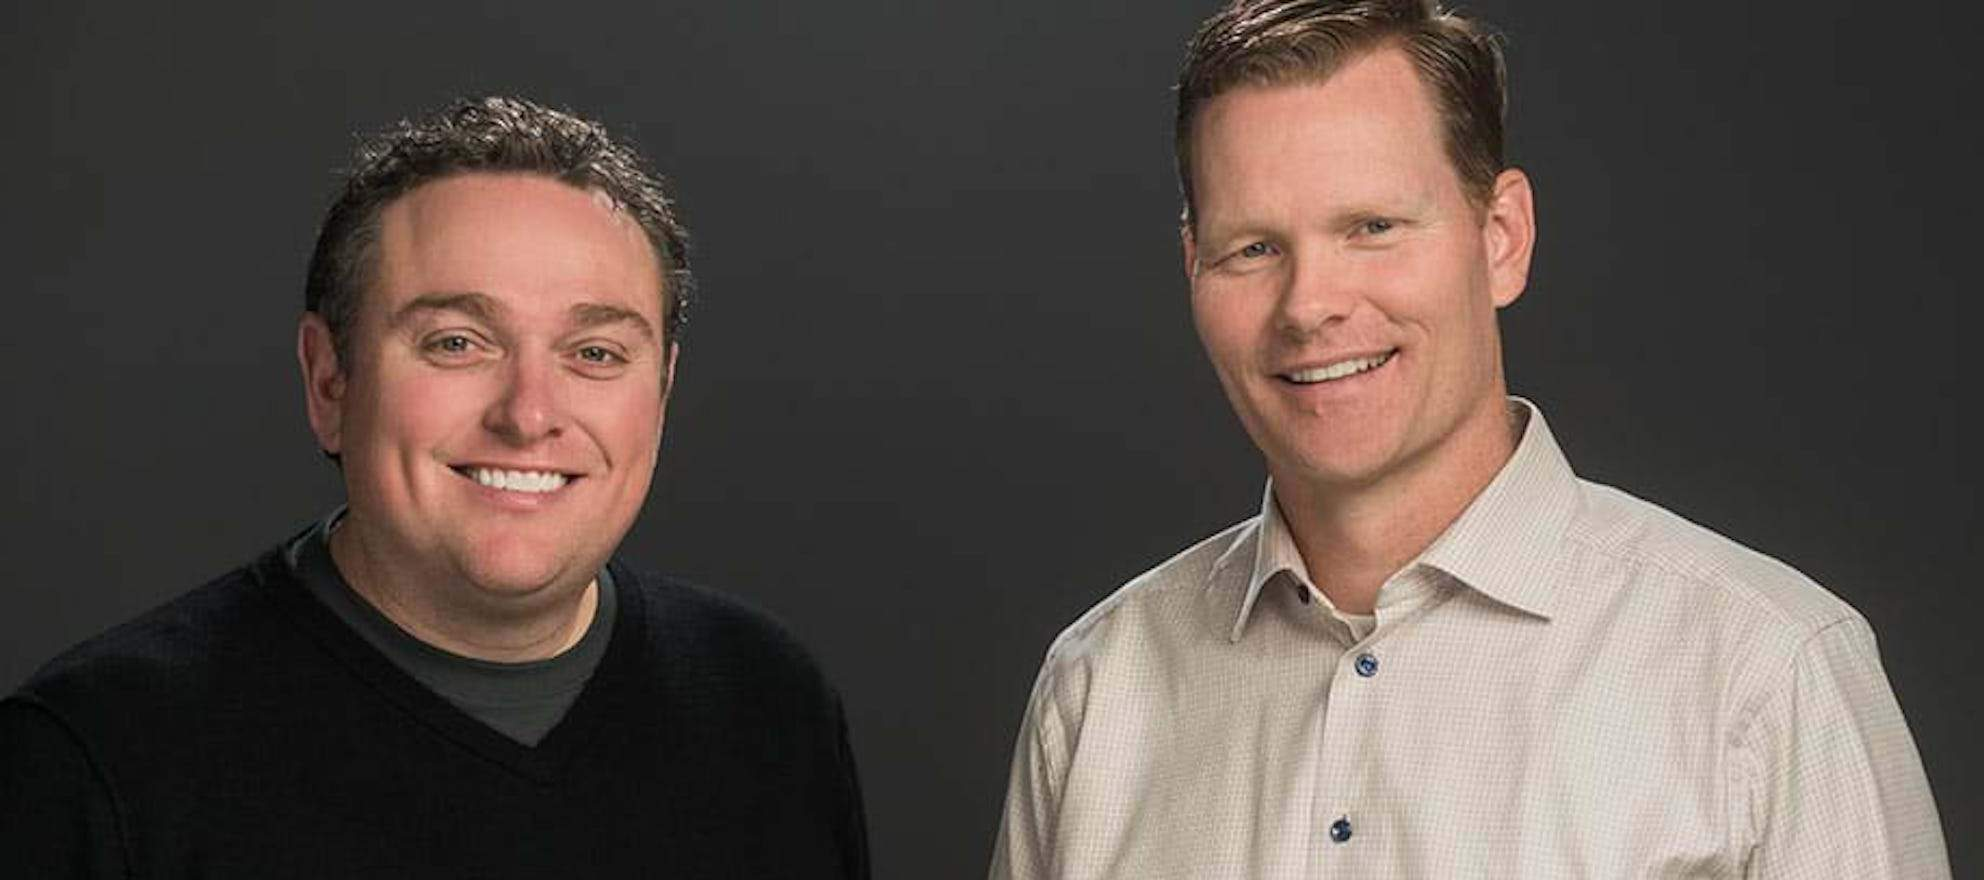 One of Offerpad's co-CEOs is stepping down